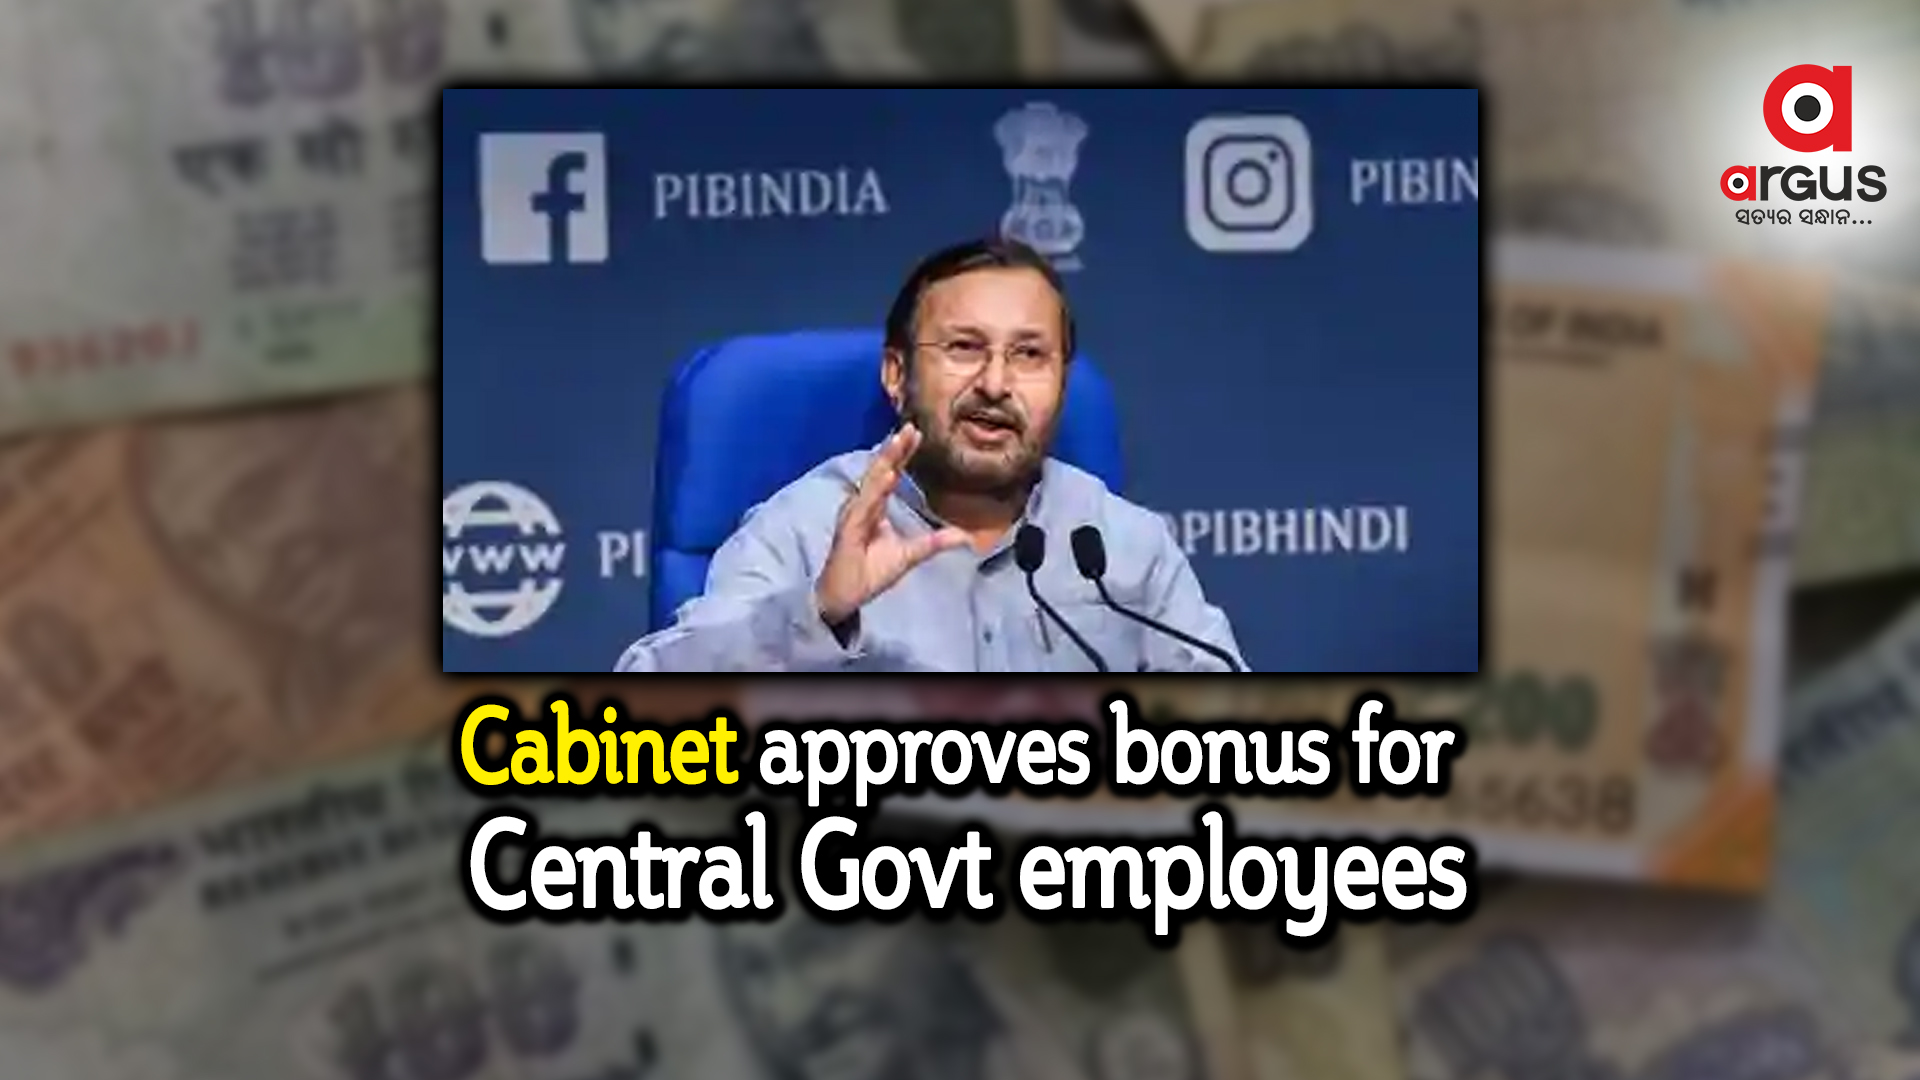 Cabinet approves bonus for Central Govt employees; Over 30 lakh to benefit